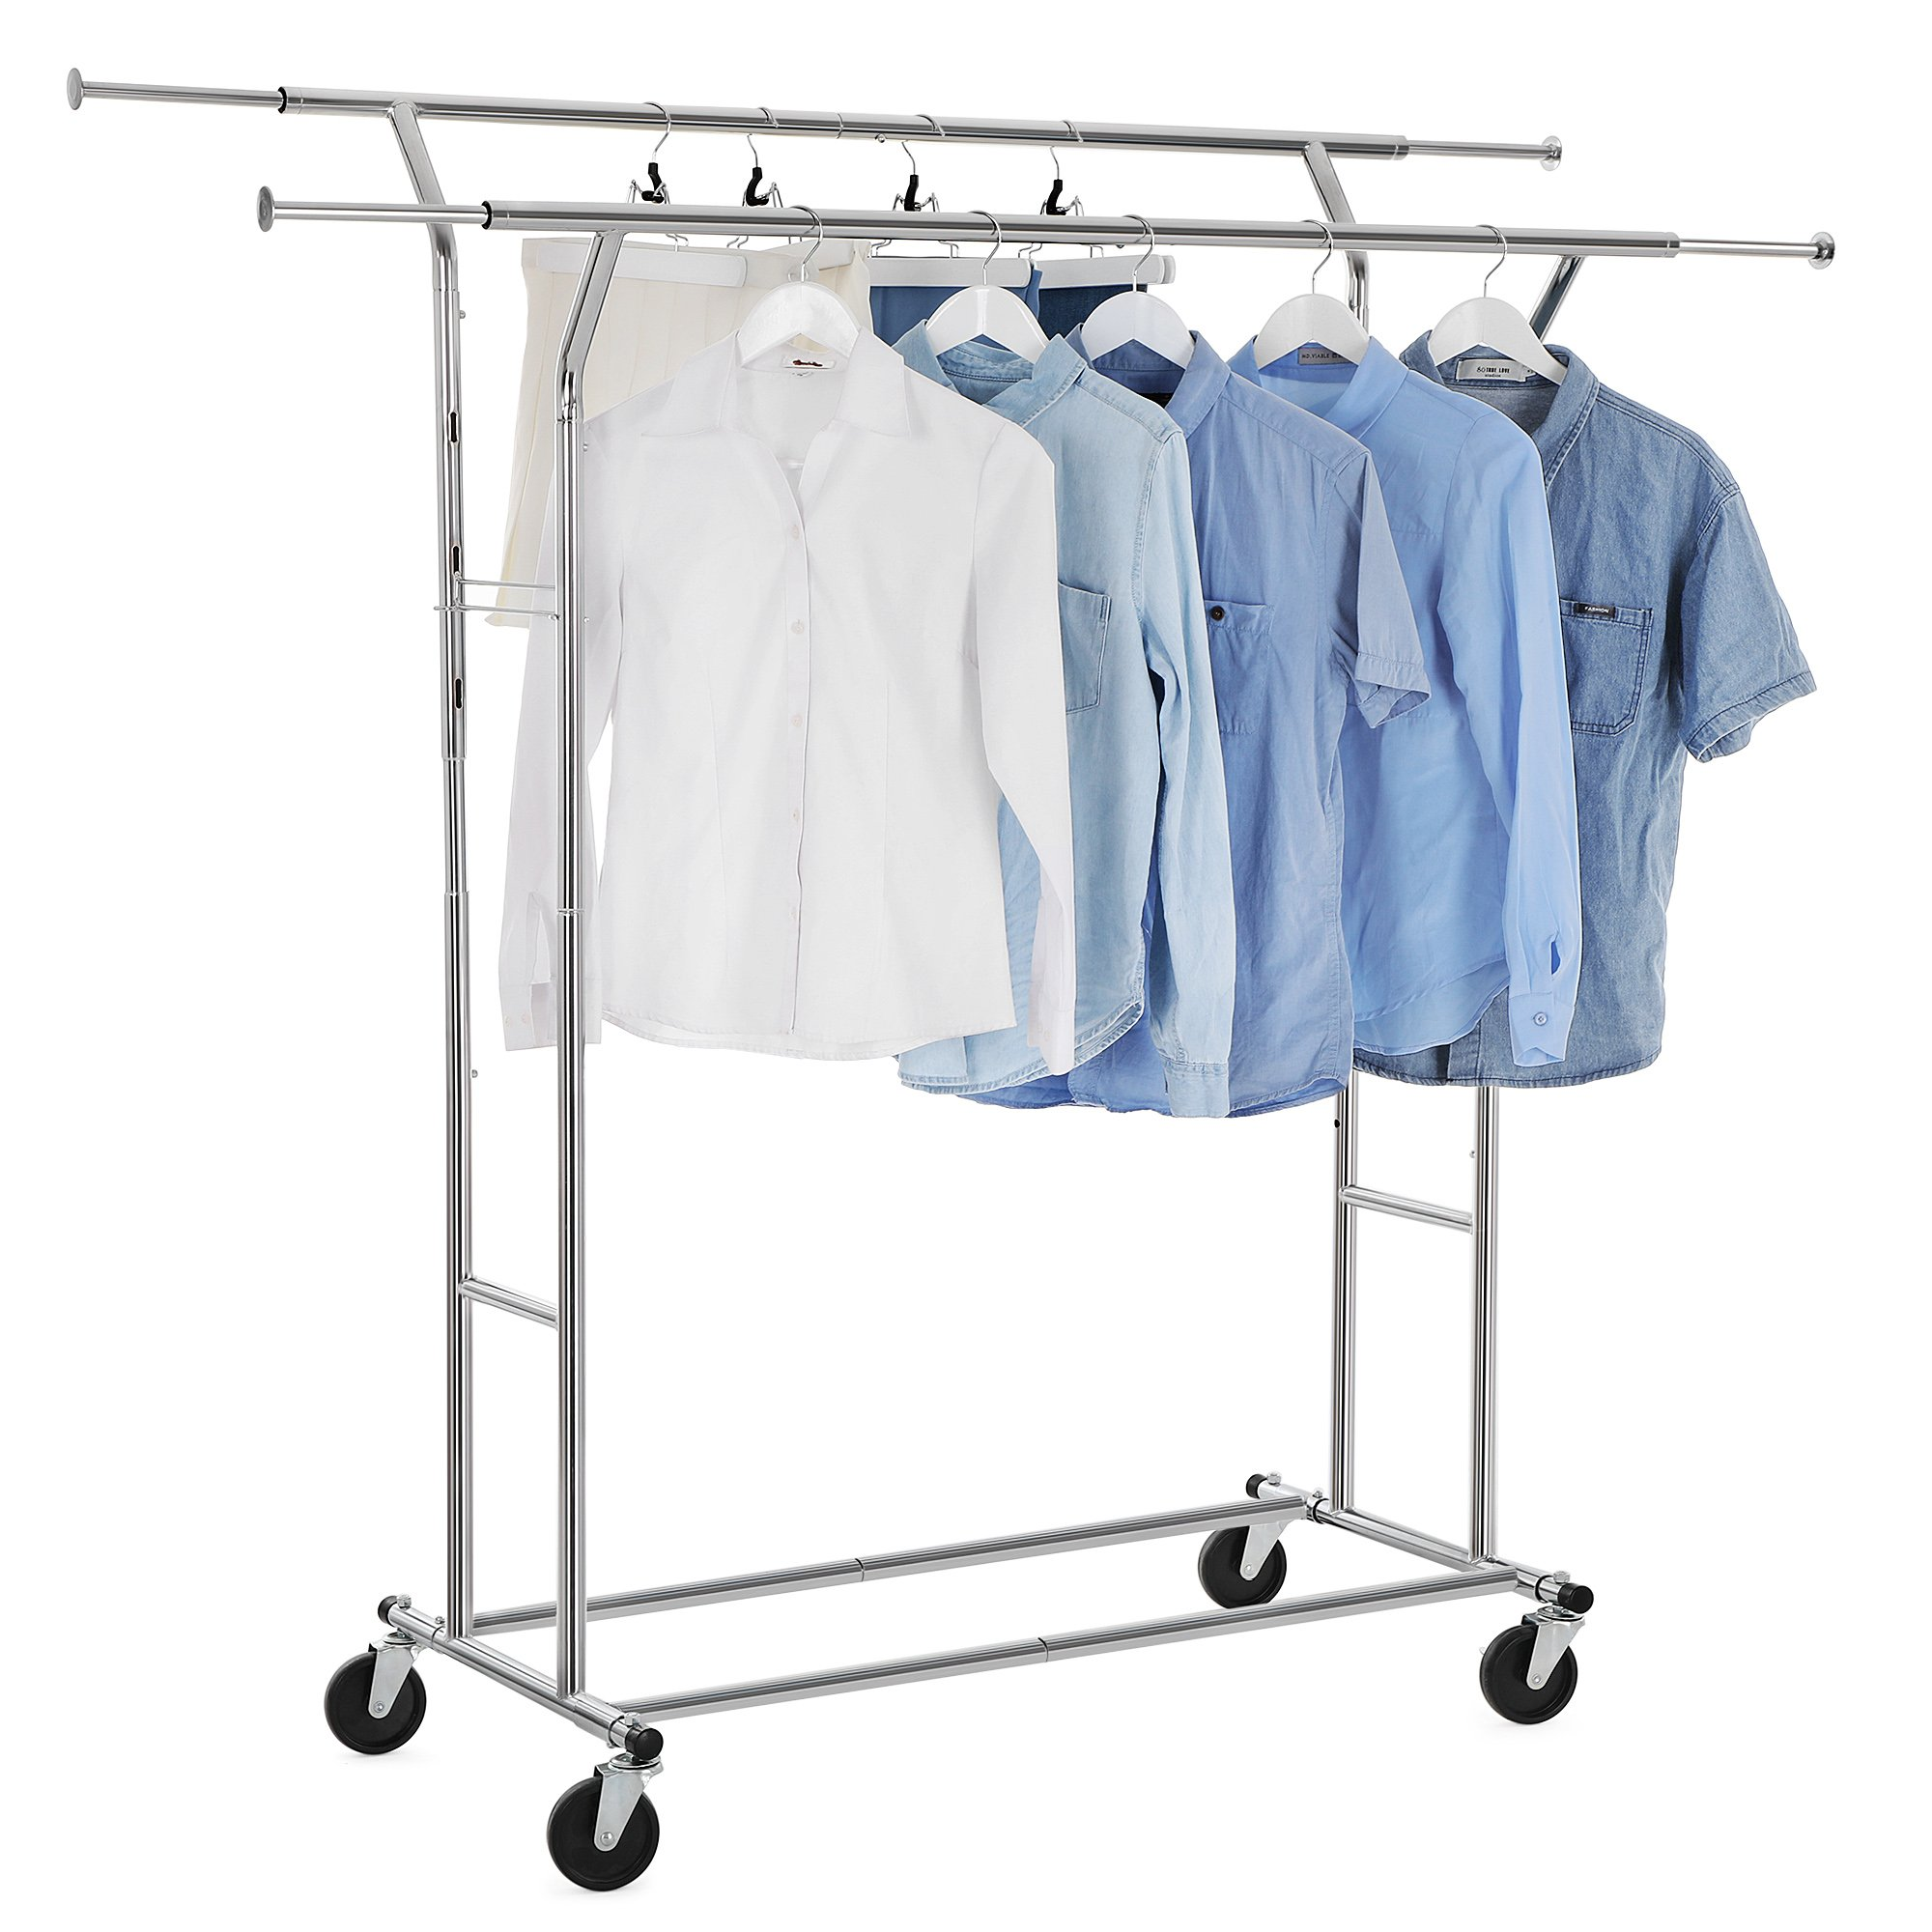 Songmics double rail clothes racks commercial grade height adjustable heavy duty clothing garment racks for boutiques